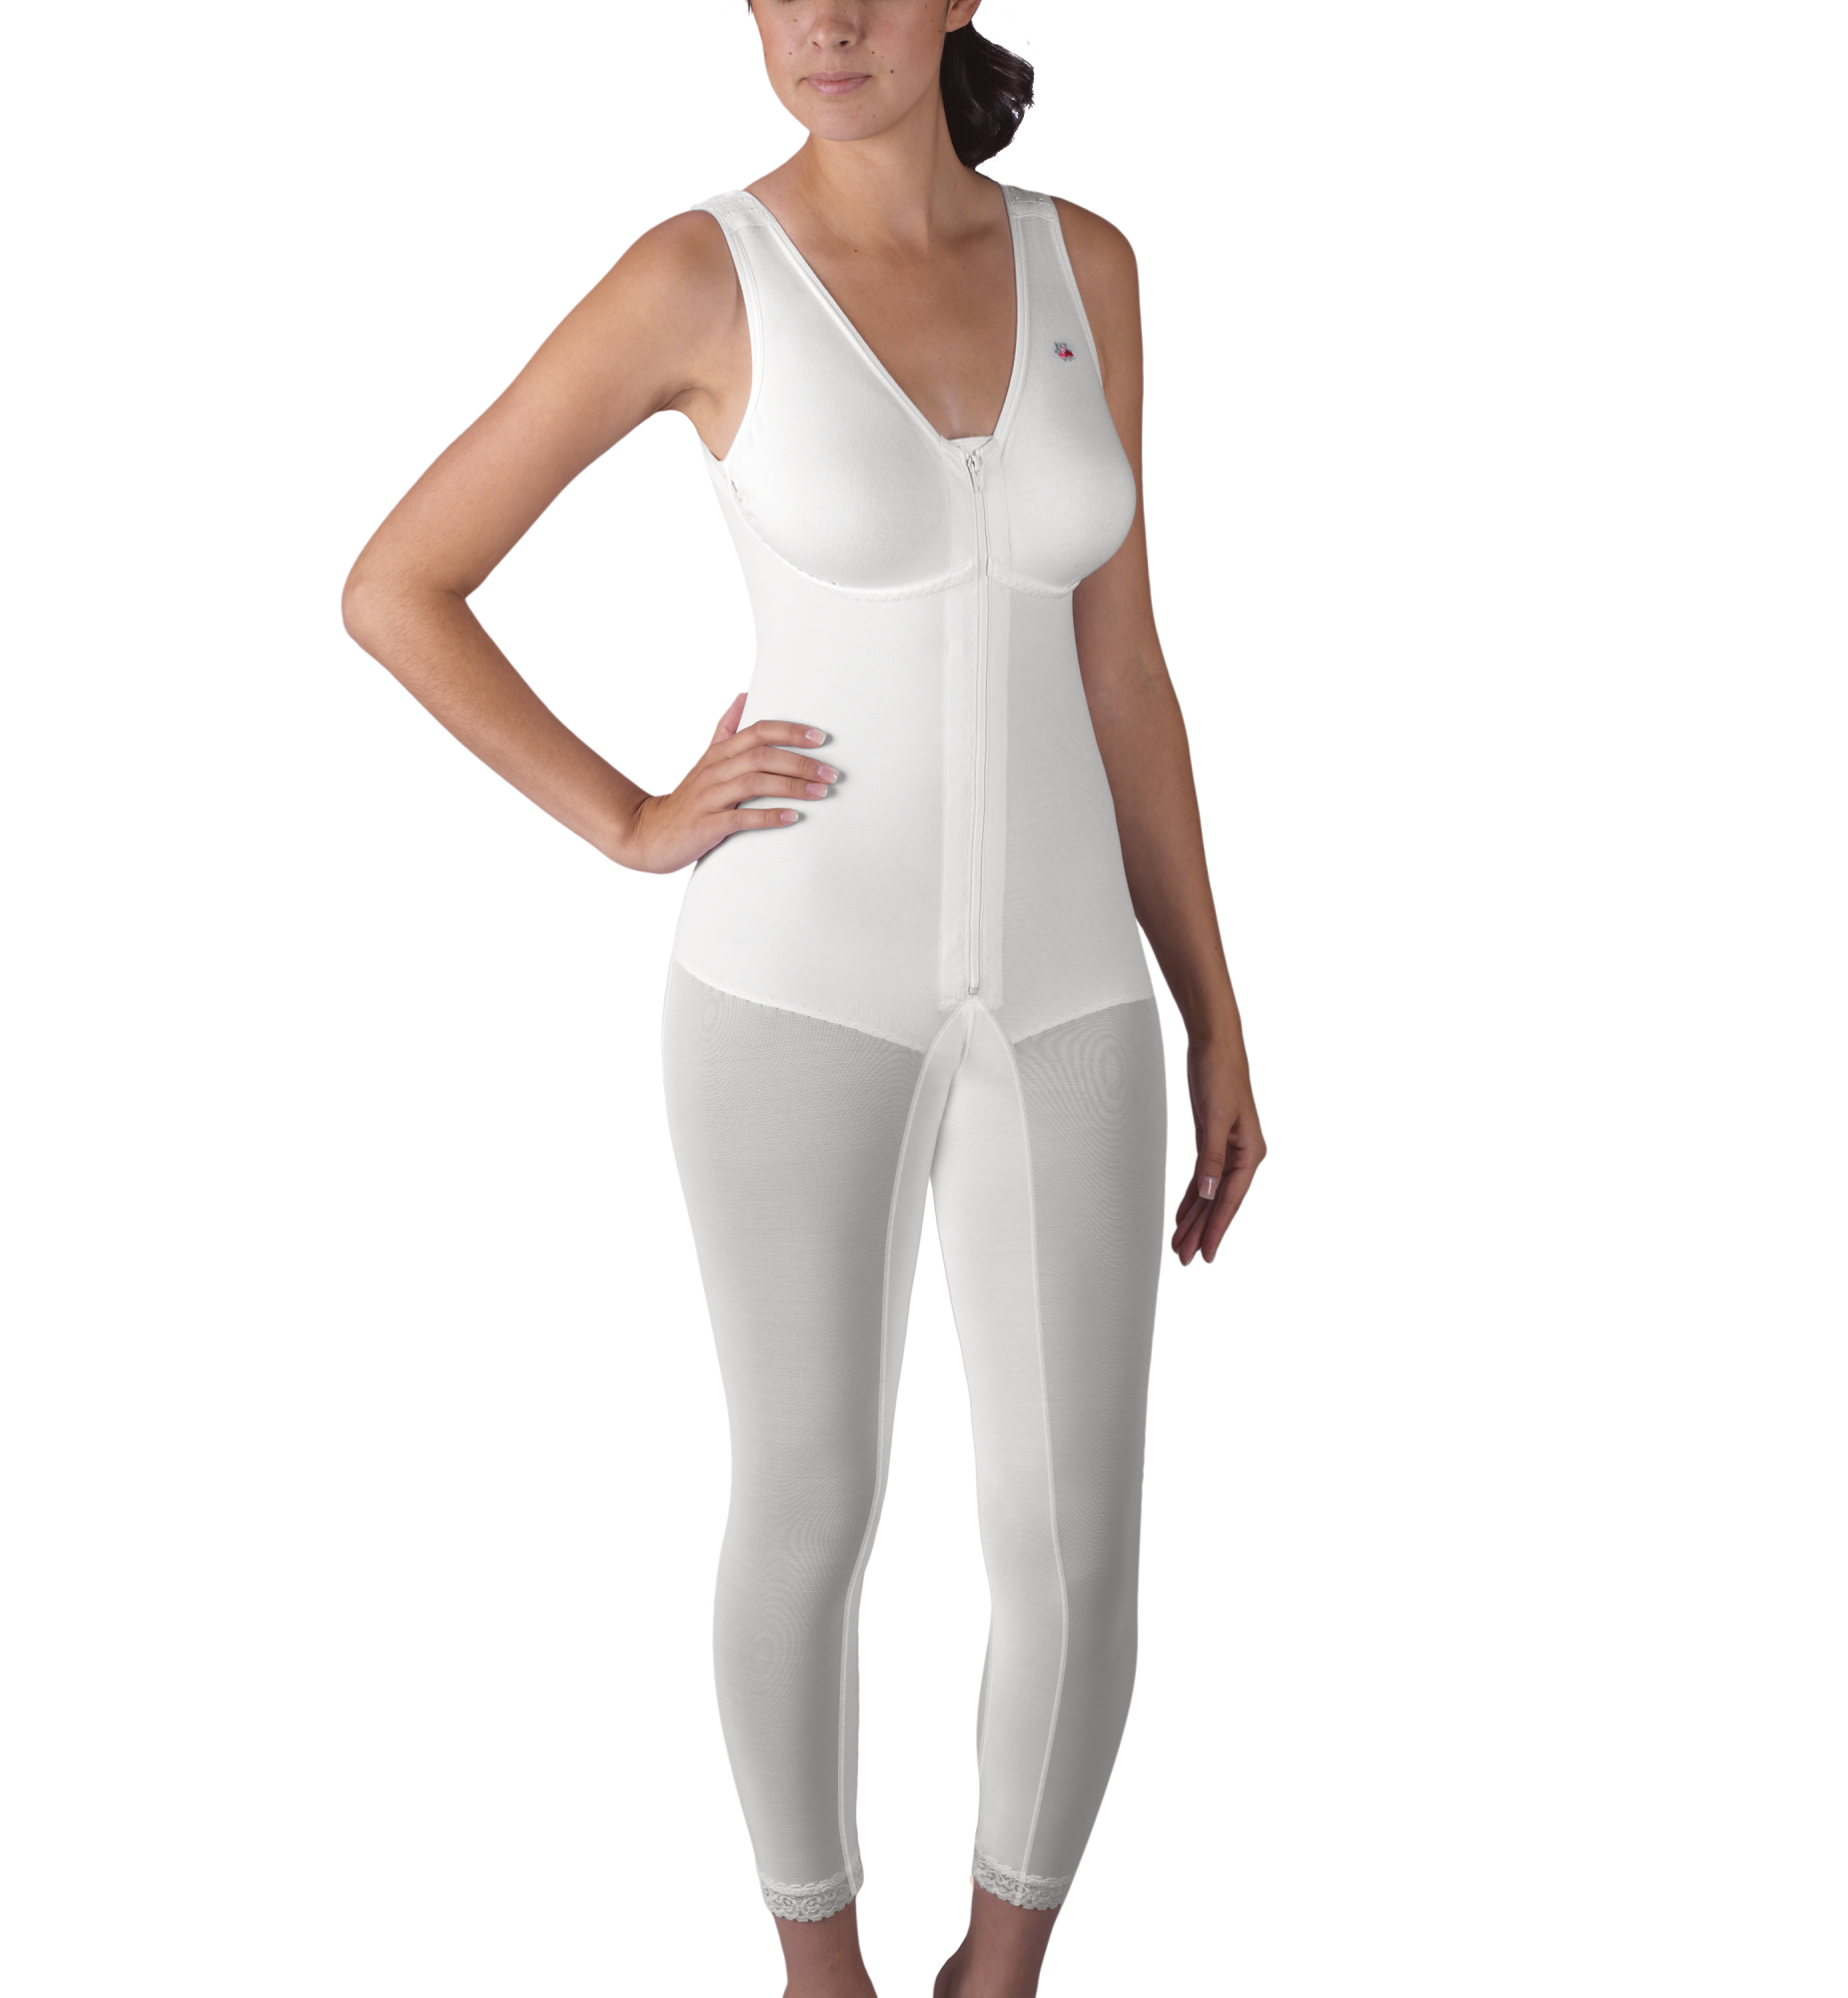 f6d8ee79ae117 Zippered Below-Knee Molded Buttocks High-Back Girdle with Bra ...